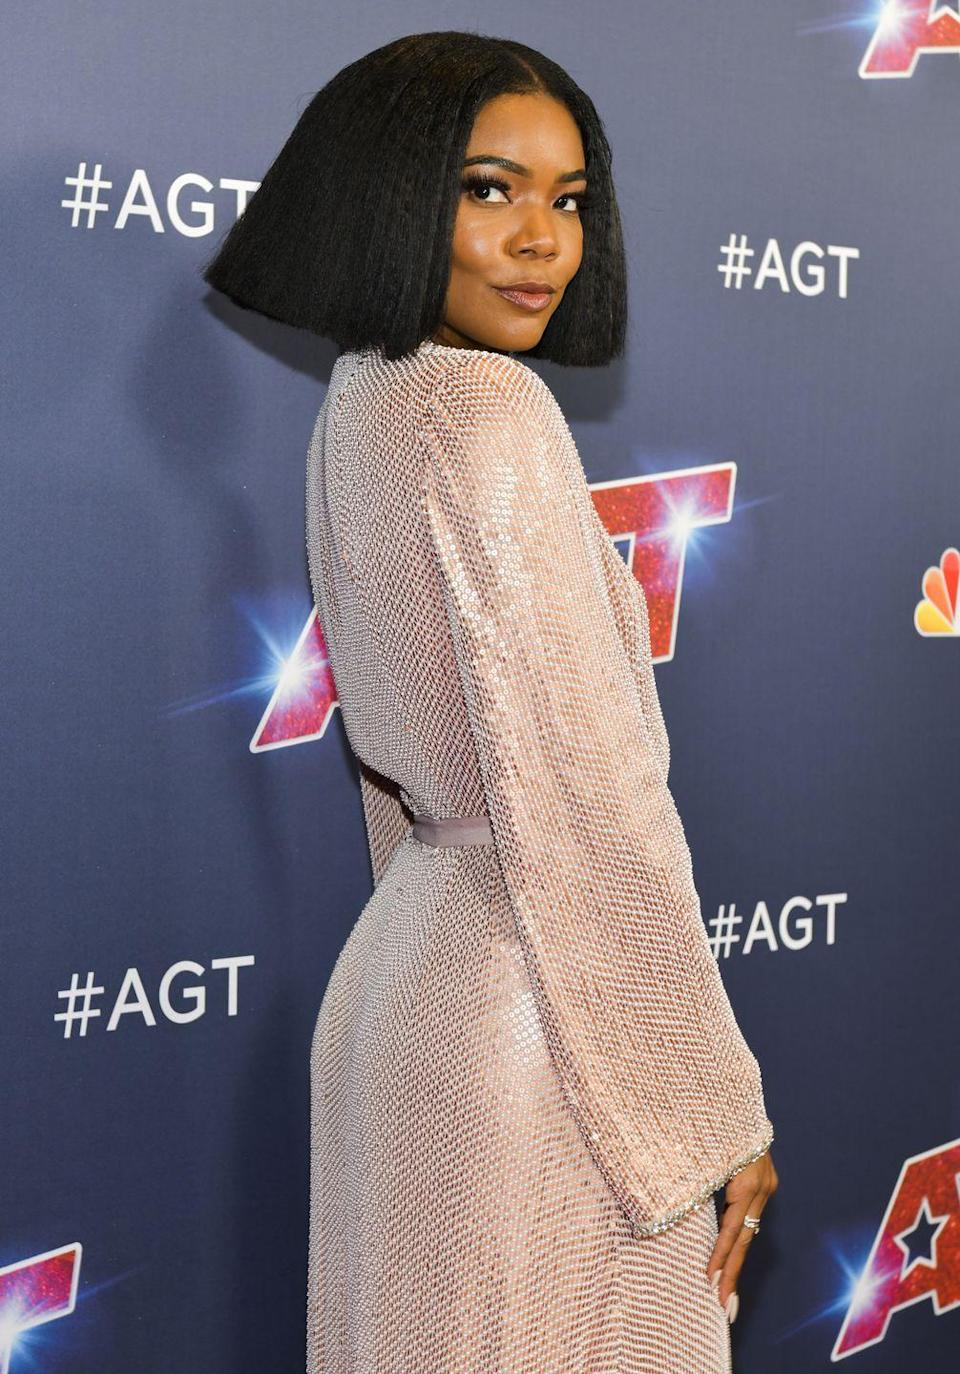 """<p><strong>Gabrielle Union</strong> shows us that a <a href=""""https://www.goodhousekeeping.com/beauty/hair/g25396437/angled-bob-hairstyles/"""" rel=""""nofollow noopener"""" target=""""_blank"""" data-ylk=""""slk:blunt textured bob"""" class=""""link rapid-noclick-resp"""">blunt textured bob</a> is a great way to switch up <a href=""""https://www.goodhousekeeping.com/beauty/hair/a39259/curly-hair-tips-and-hairstyles/"""" rel=""""nofollow noopener"""" target=""""_blank"""" data-ylk=""""slk:your curly style"""" class=""""link rapid-noclick-resp"""">your curly style</a>. Wigs are a great protective hairstyle for relaxed hair if you want a natural look. </p>"""